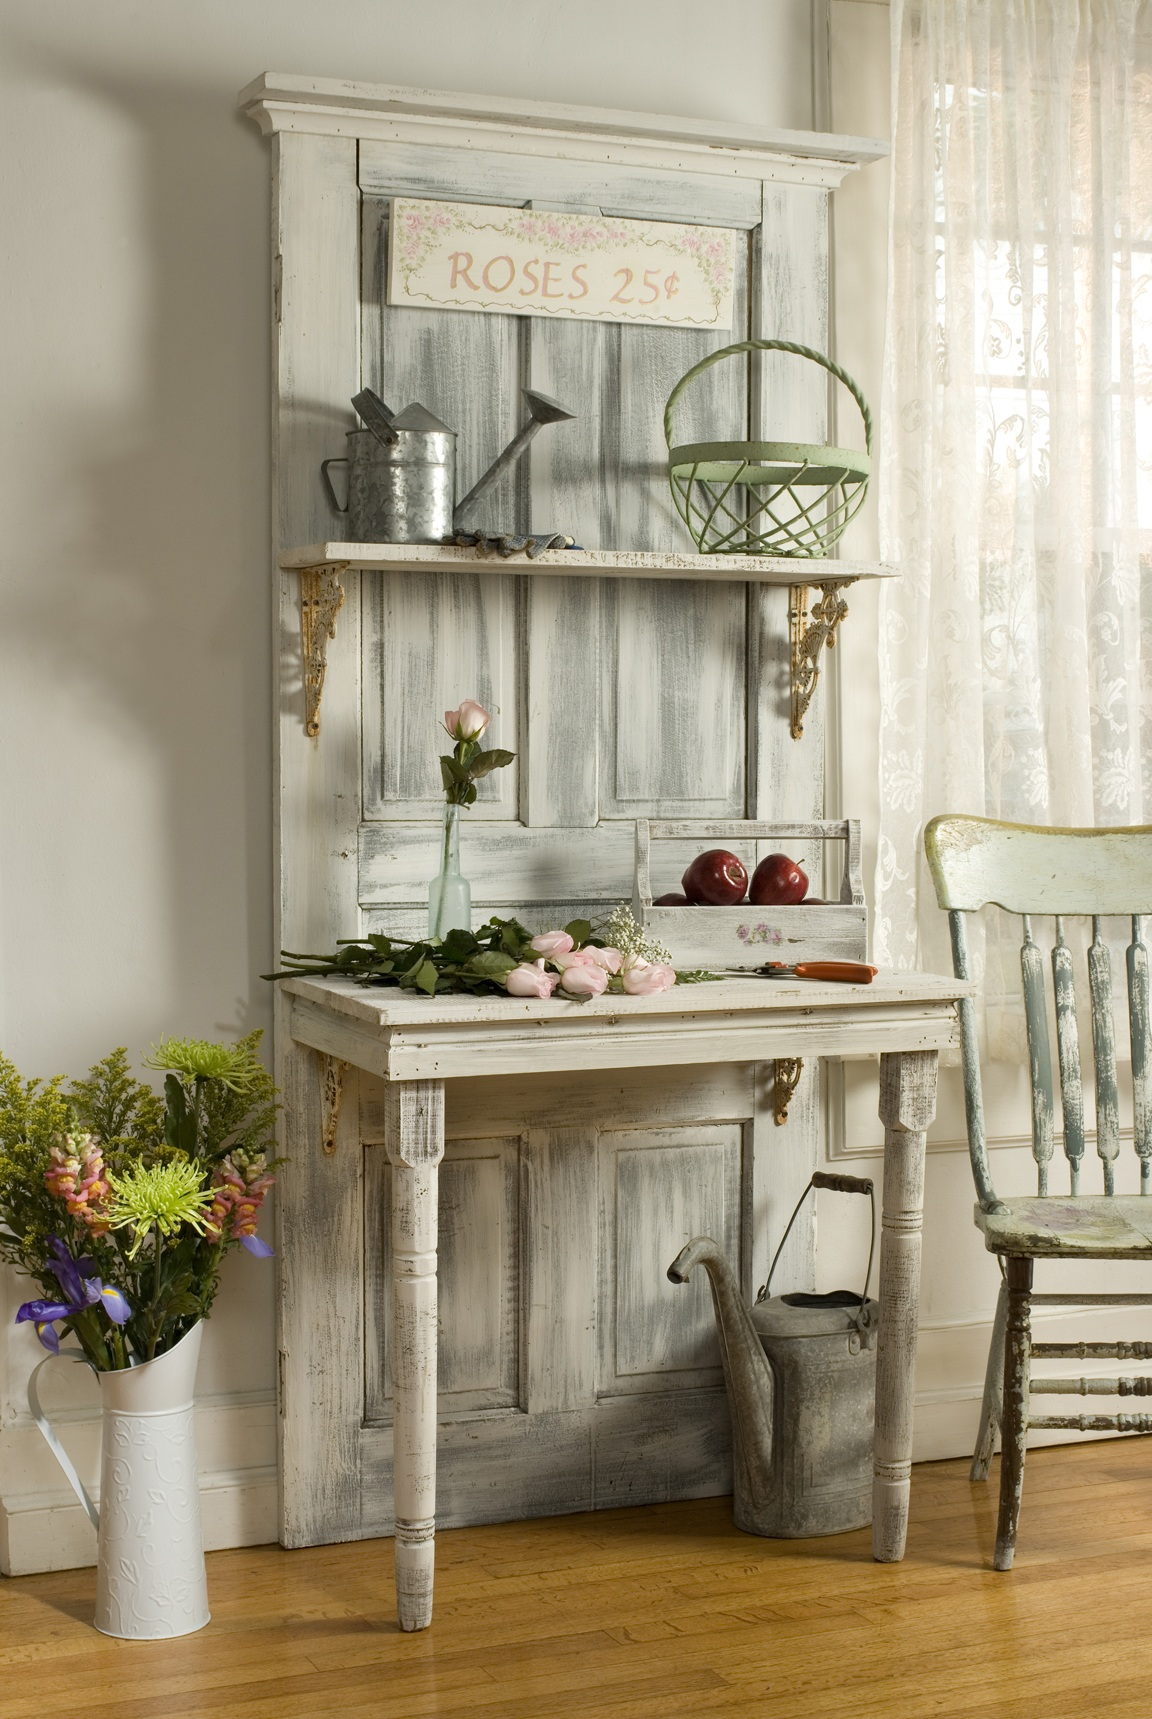 Love It Old Door Repurposed as a Desk and Shelf